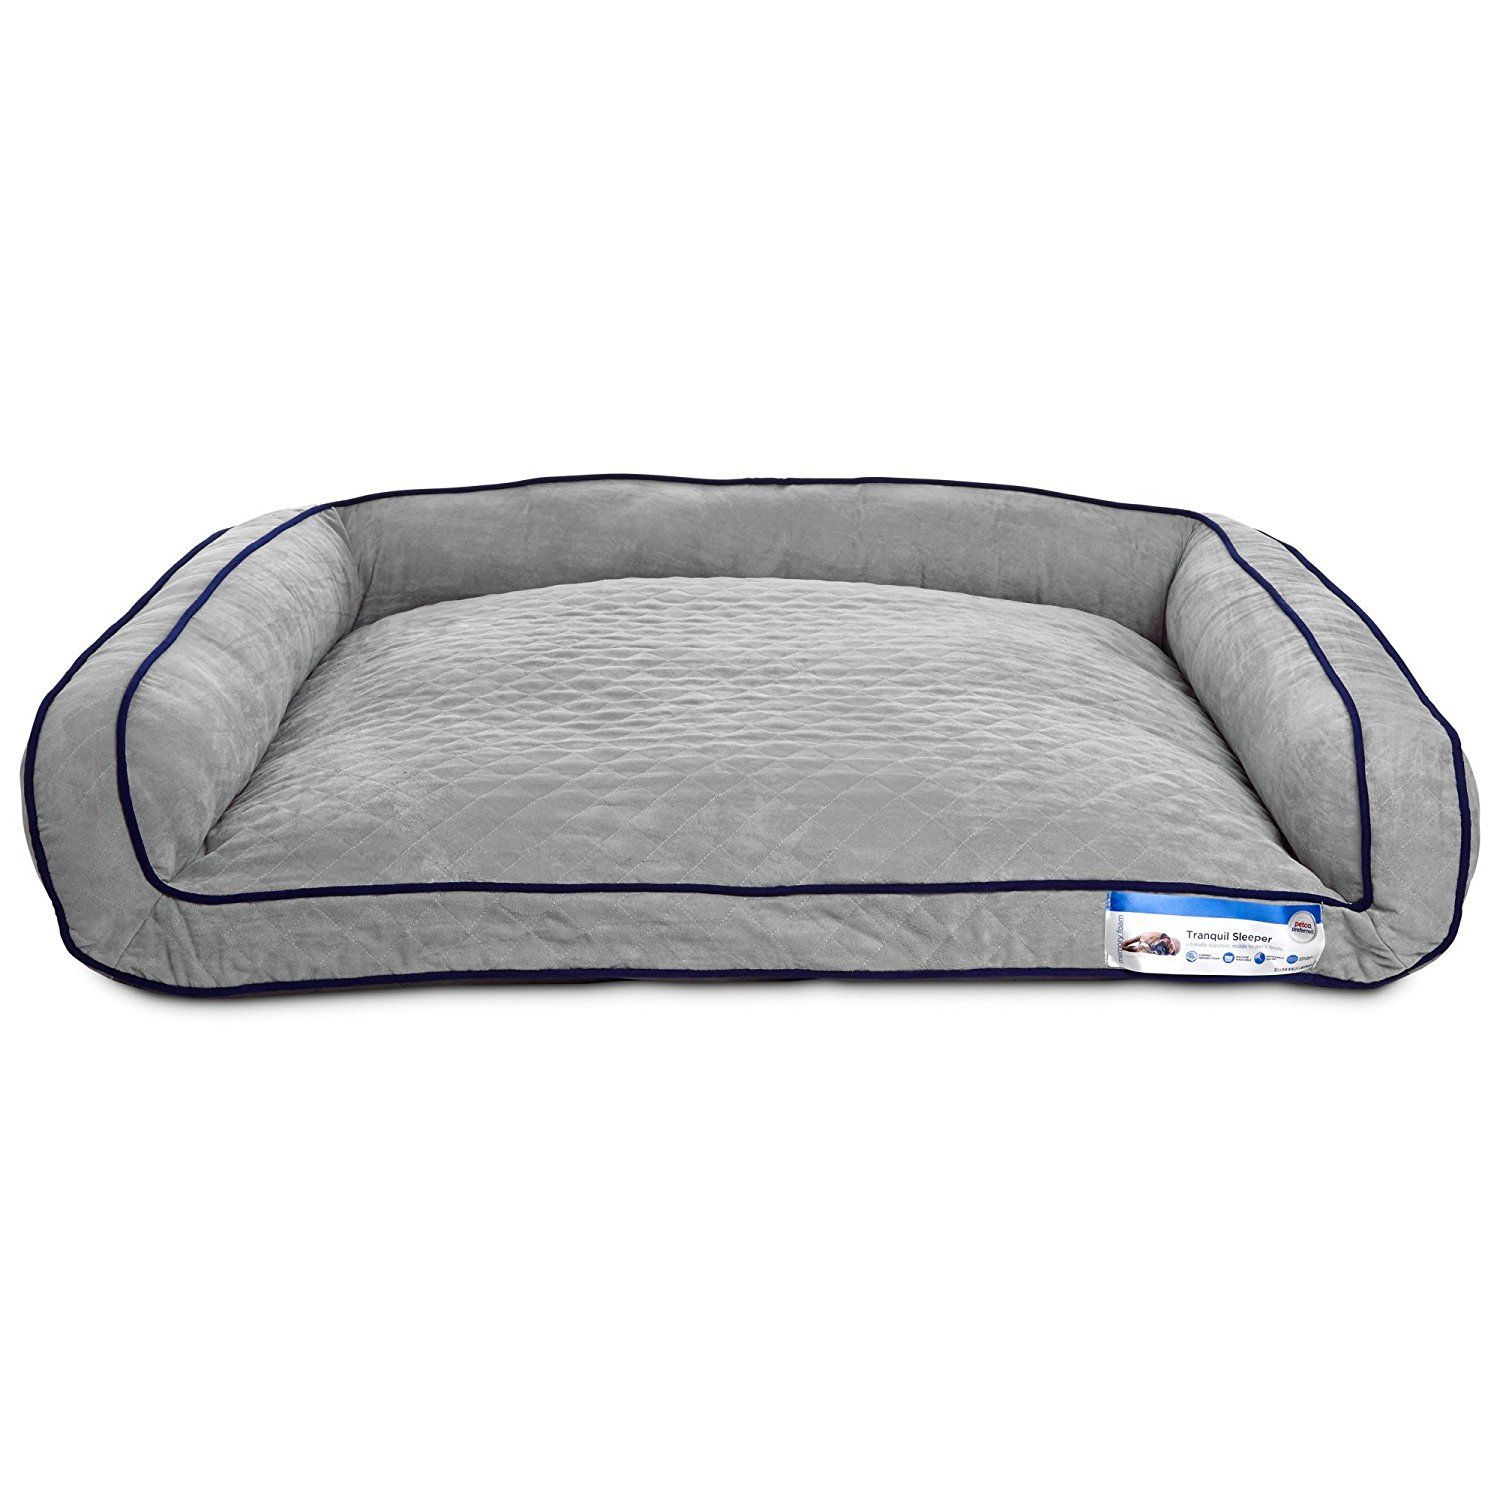 Tranquil Sleeper Memory Foam Dog Bed Startling Review Available Here This Is An Affiliate Link And Memory Foam Dog Bed Dog Bed Dog Bed Furniture